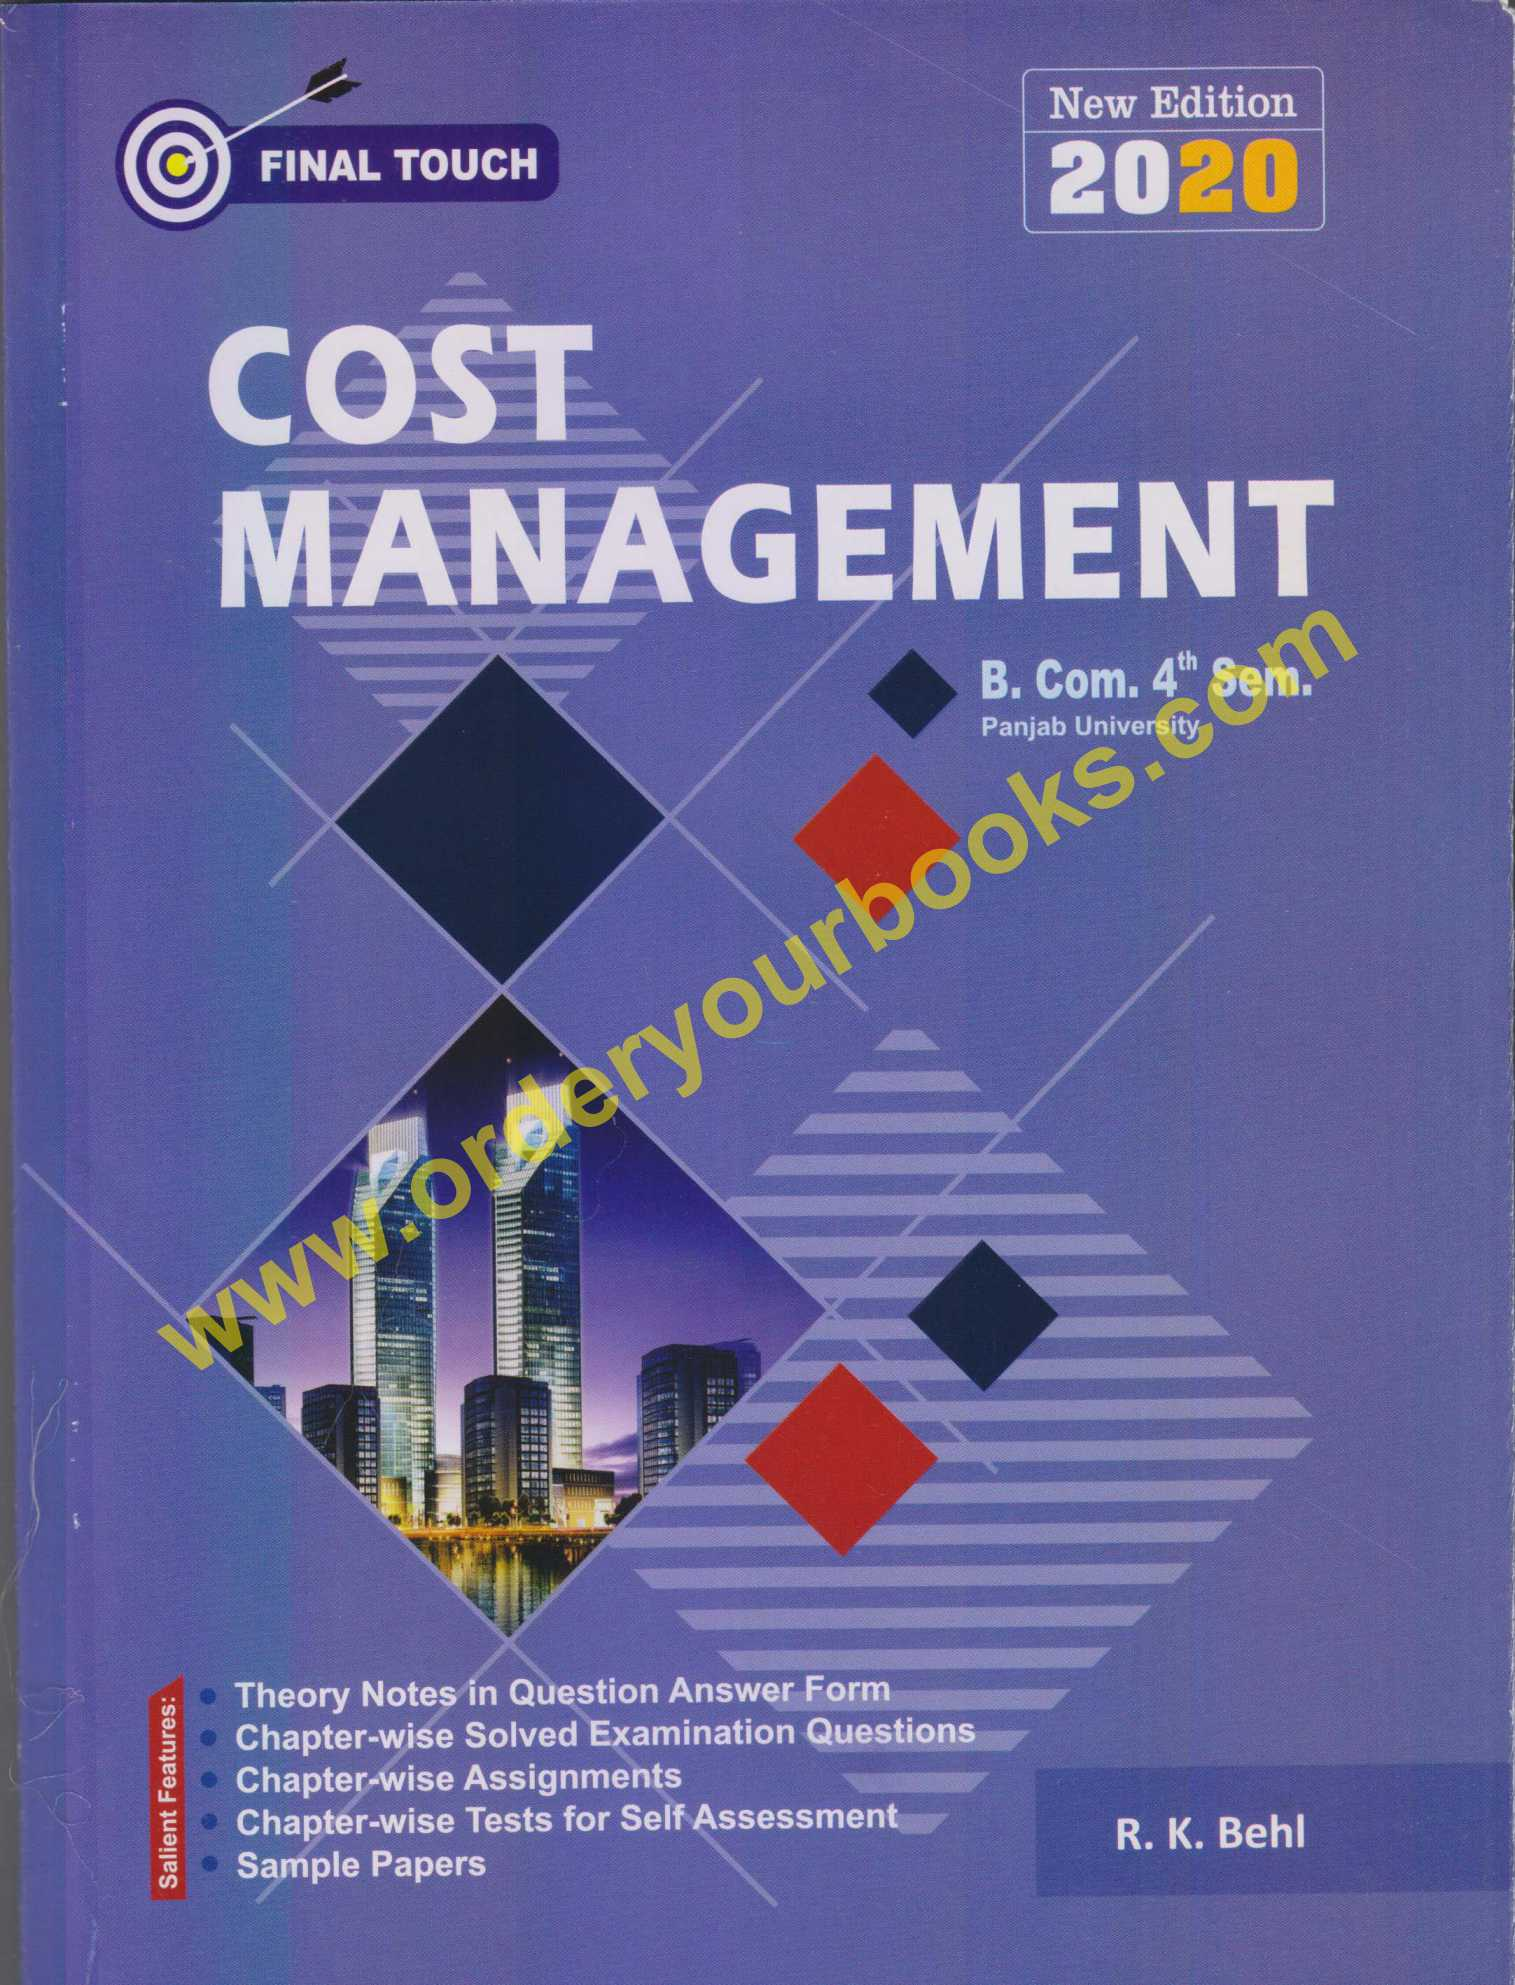 Final Touch Cost Management for Semester-IV B.Com (P.U.) by R.K Behl (Aastha Publication) Edition 2020 for Panjab University